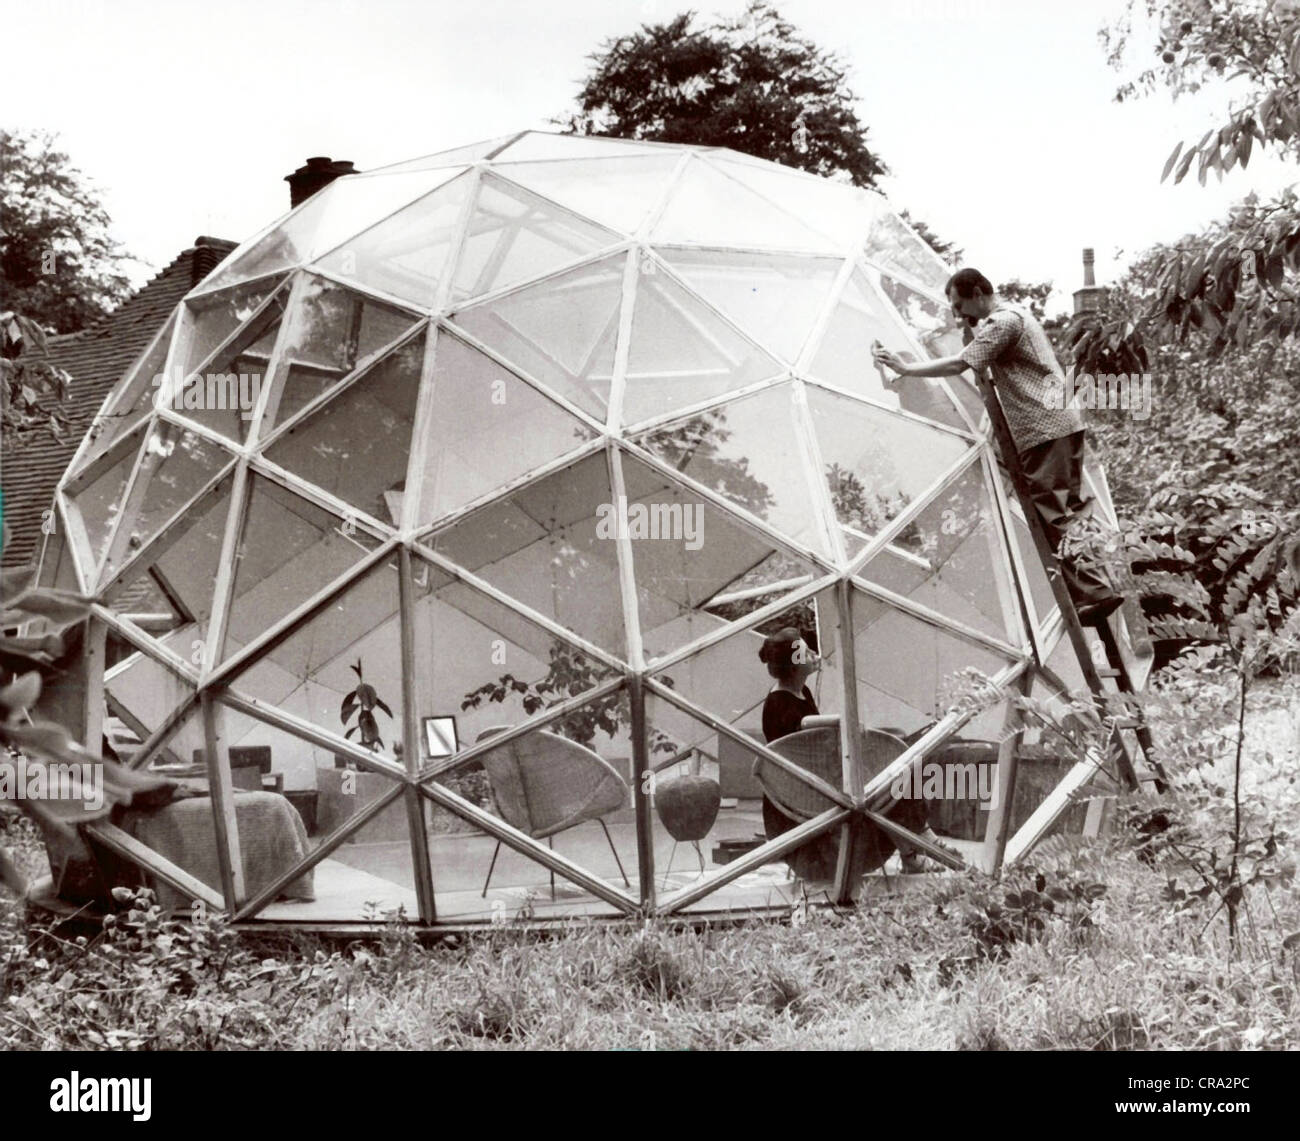 Dome House Futuristic: Husband Cleaning Windows On Geodesic Dome House Stock